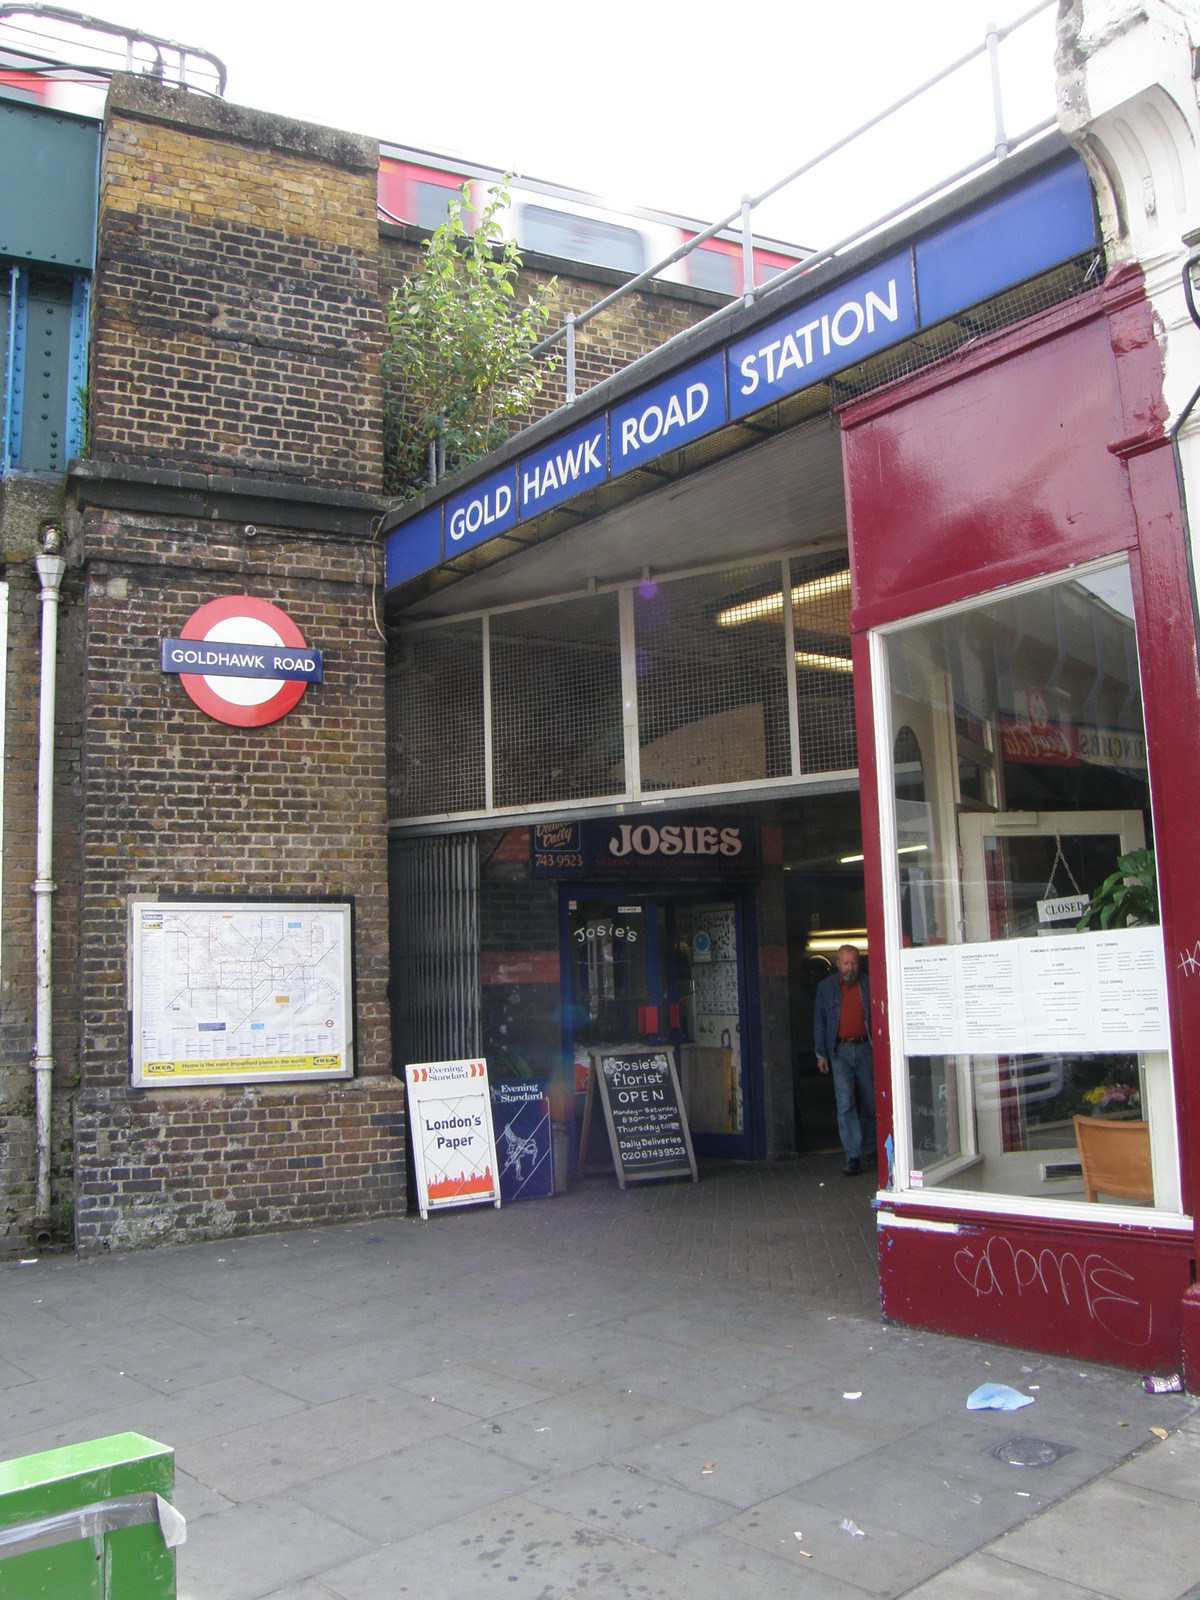 Goldhawk Road station